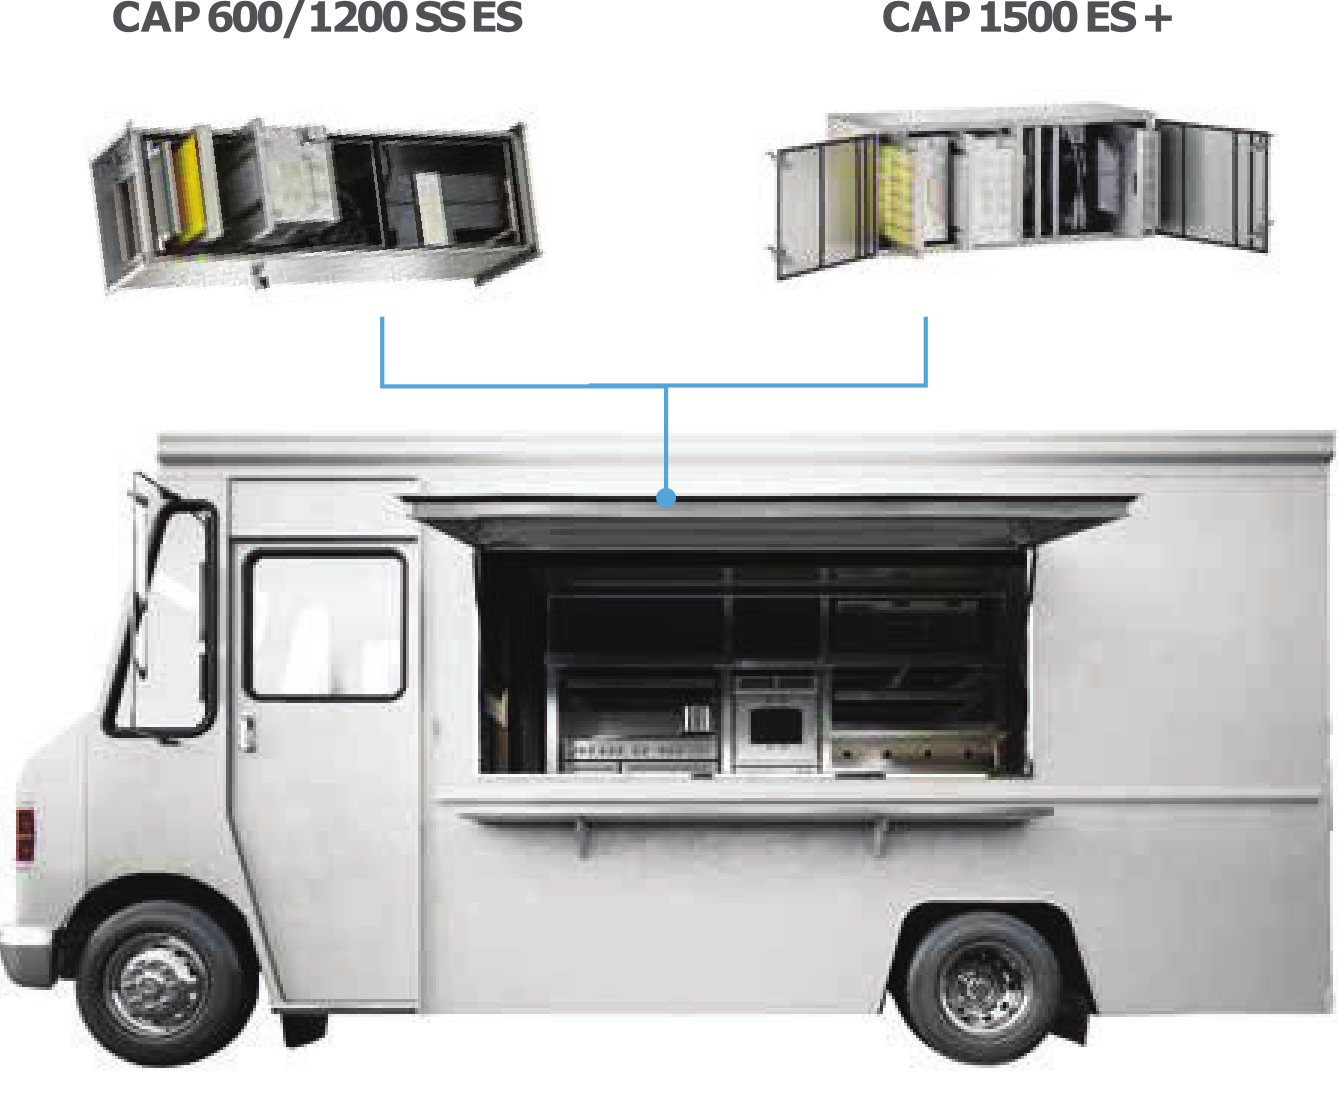 Foodtruck mobilne systemy gastronomiczne